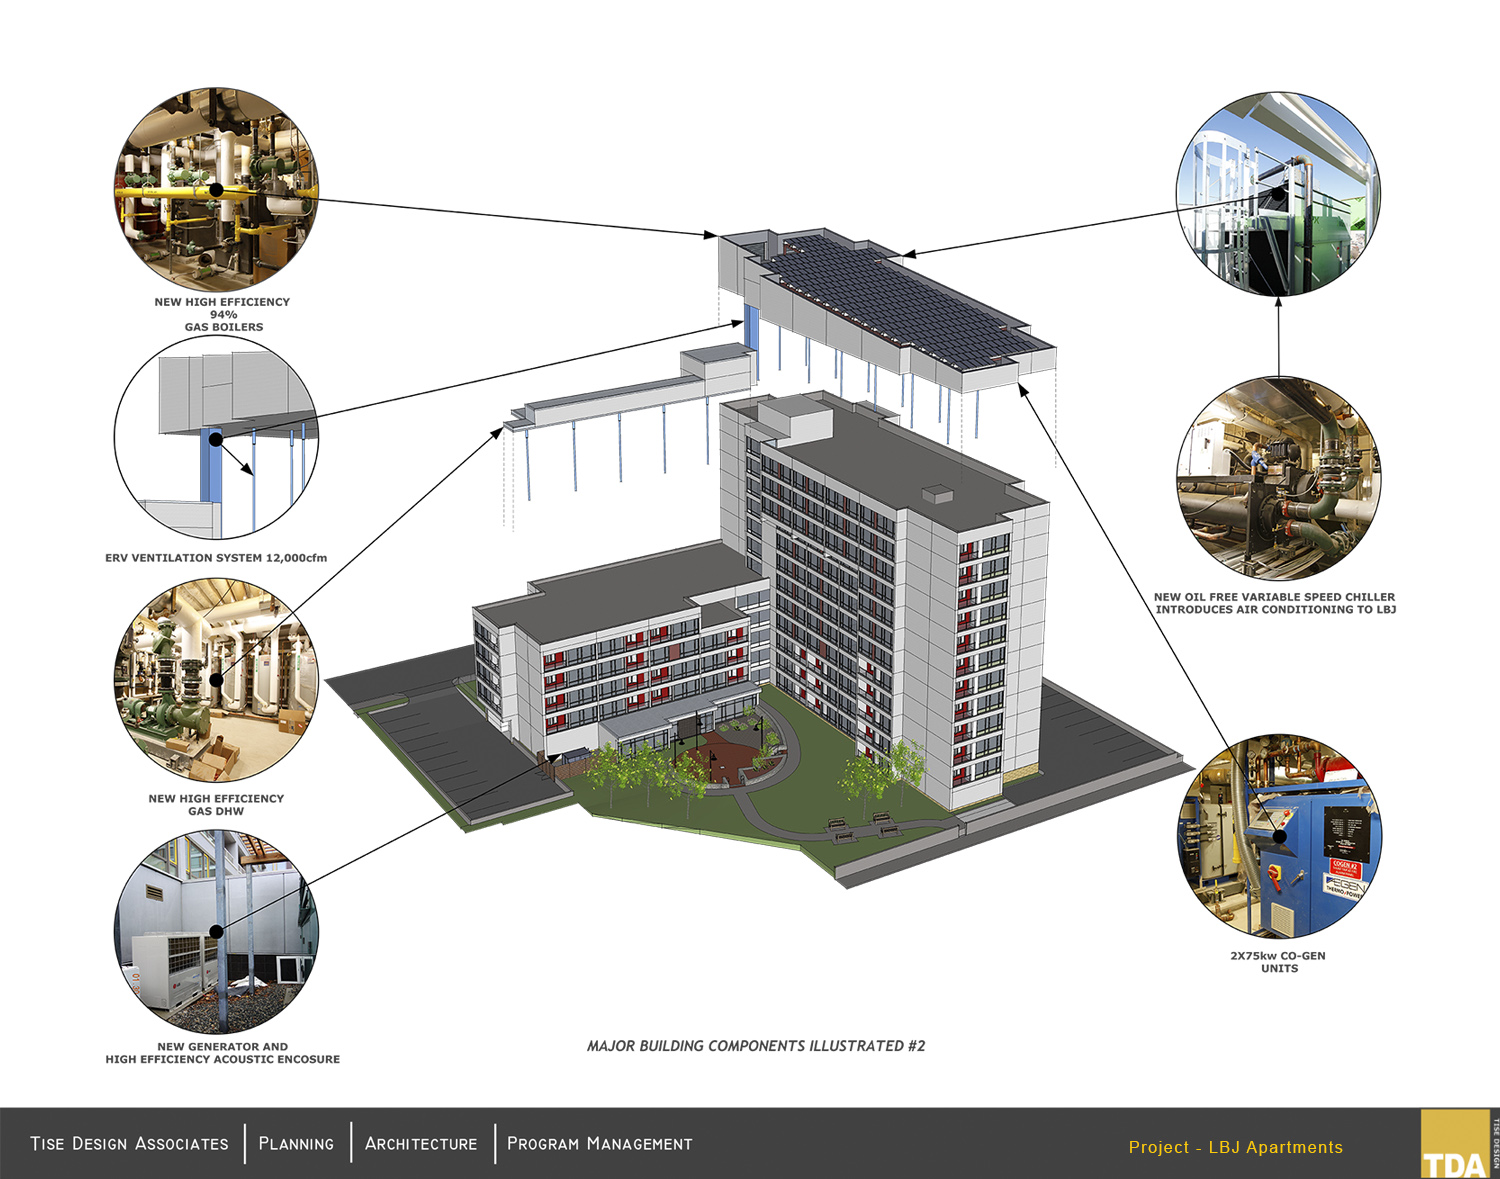 Major Building Components Illustrated #2 Tise Design Associates}